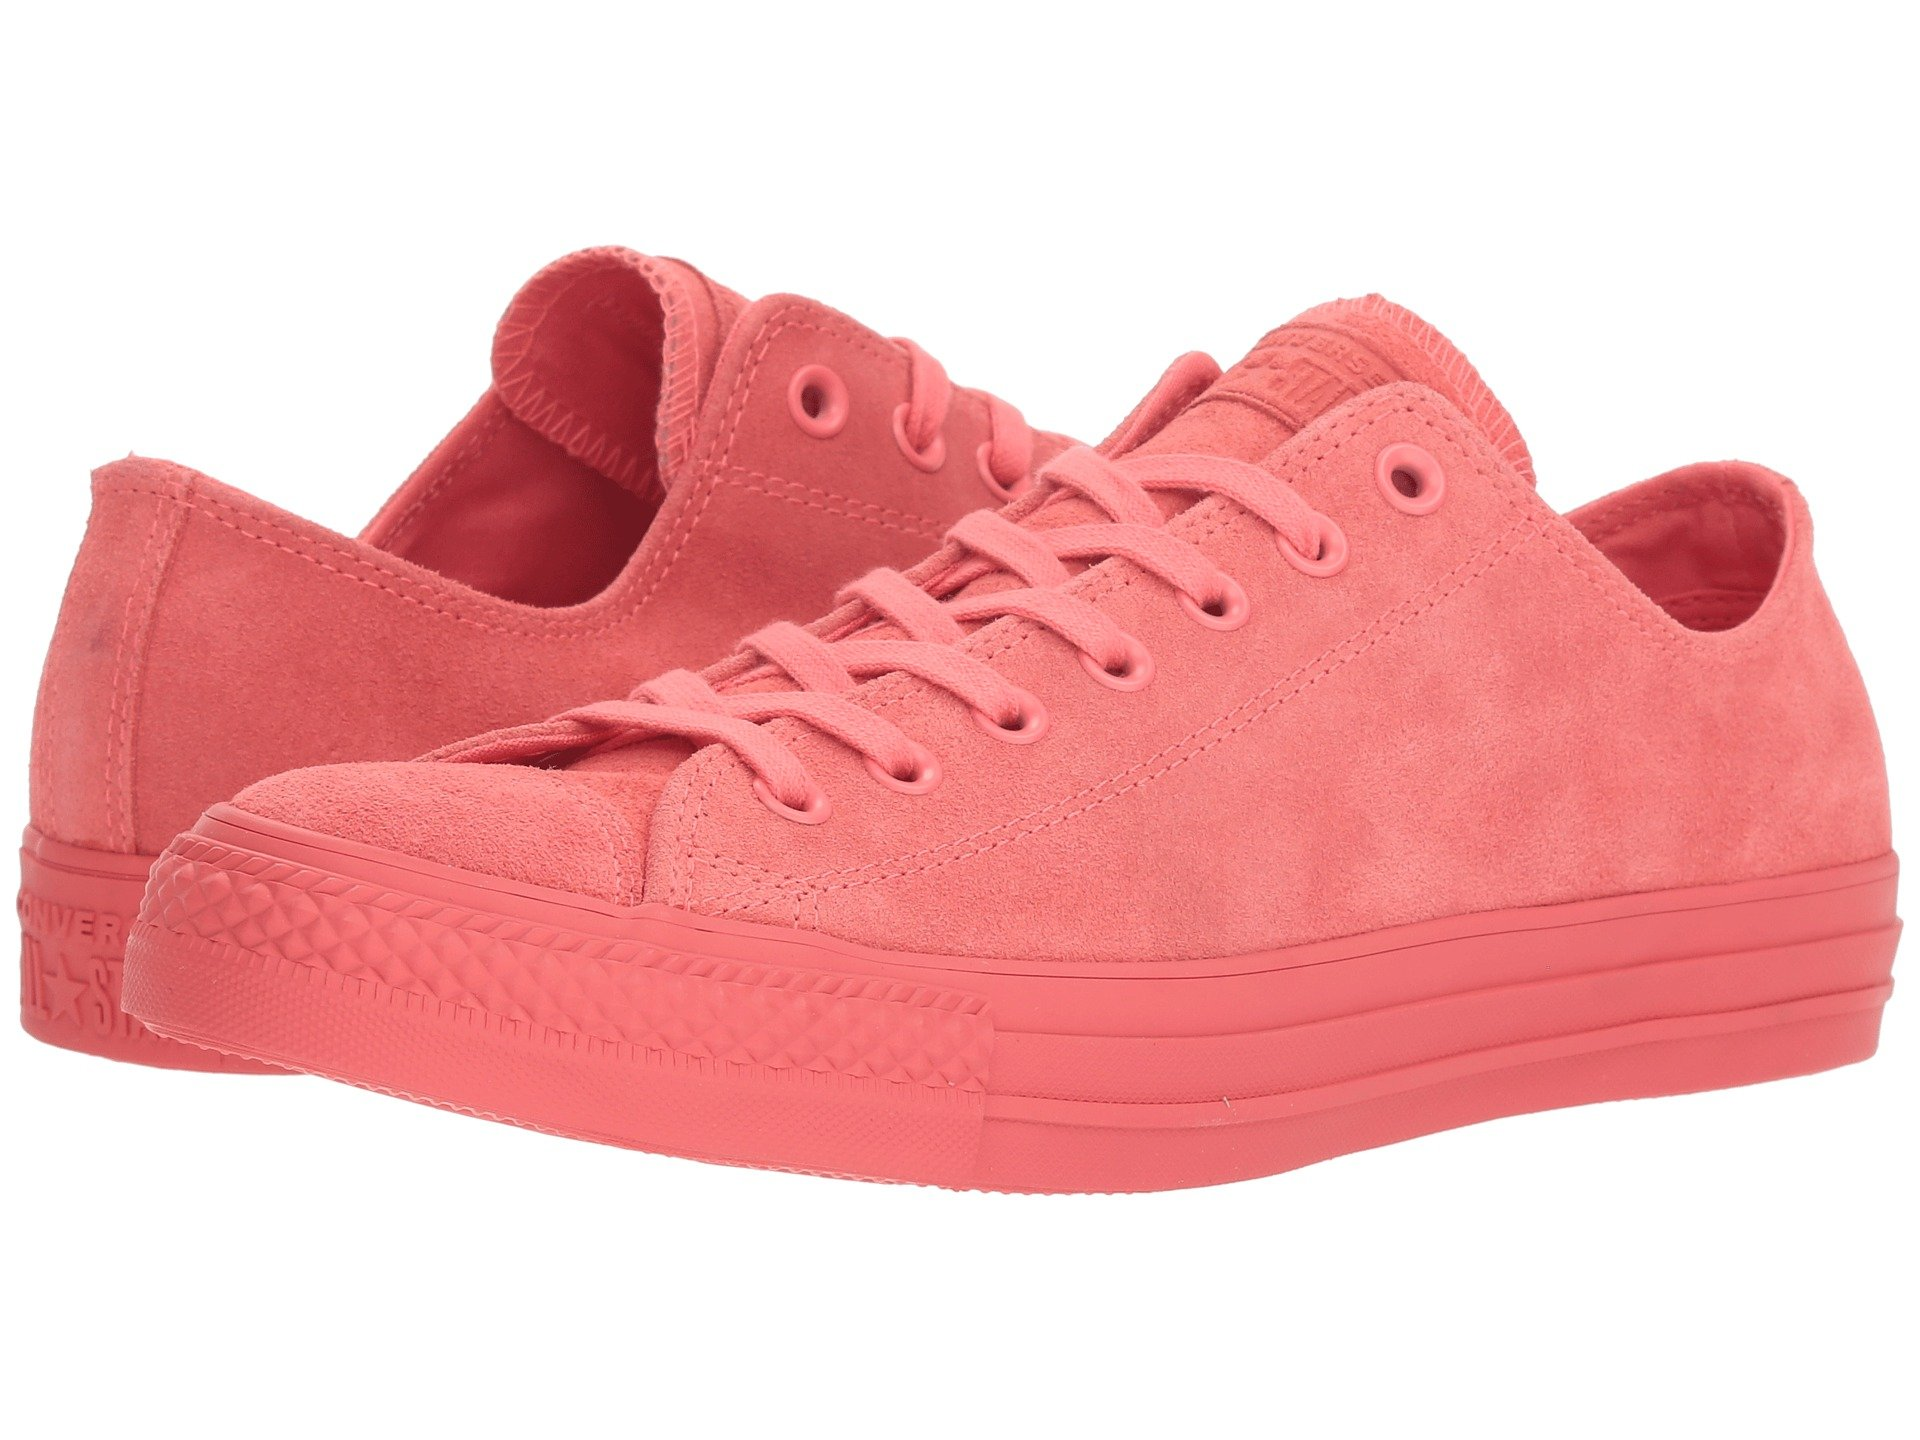 be0d5c58dae9 Кеды Converse Chuck Taylor® All Star® Ox - Mono Suede Punch Coral, 39.5